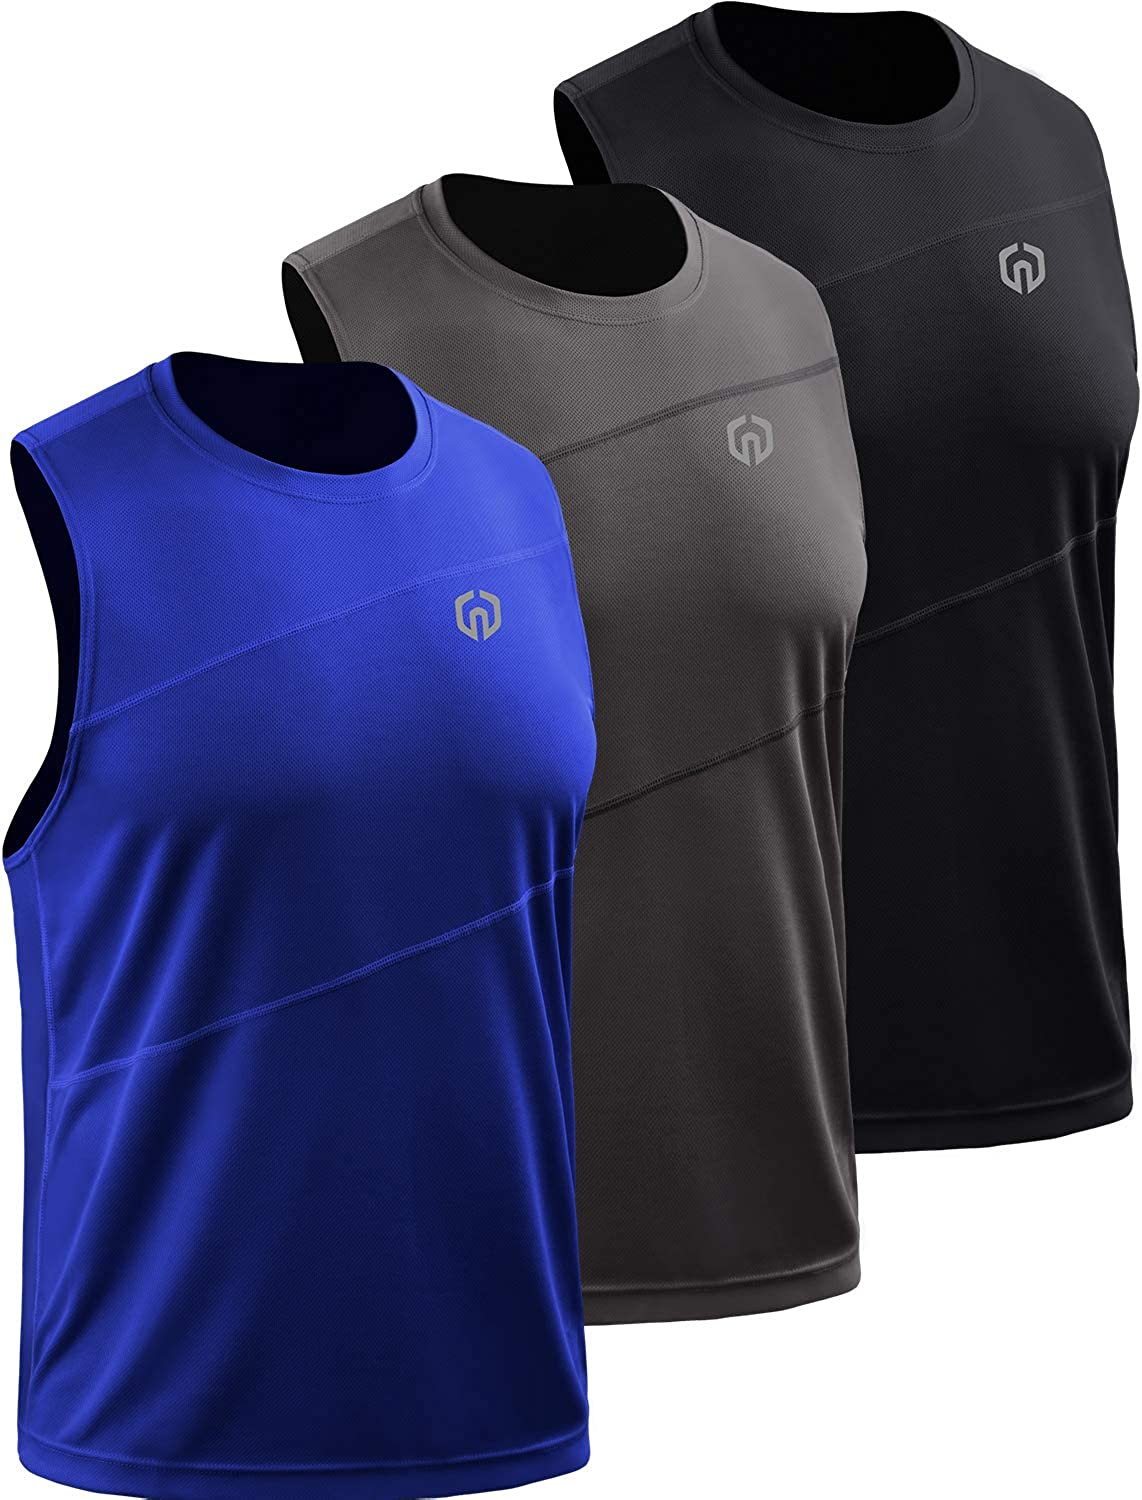 Neleus Men's 3 Pack Workout New sales Tank Tops Shi Sleeveless Max 77% OFF Gym Running